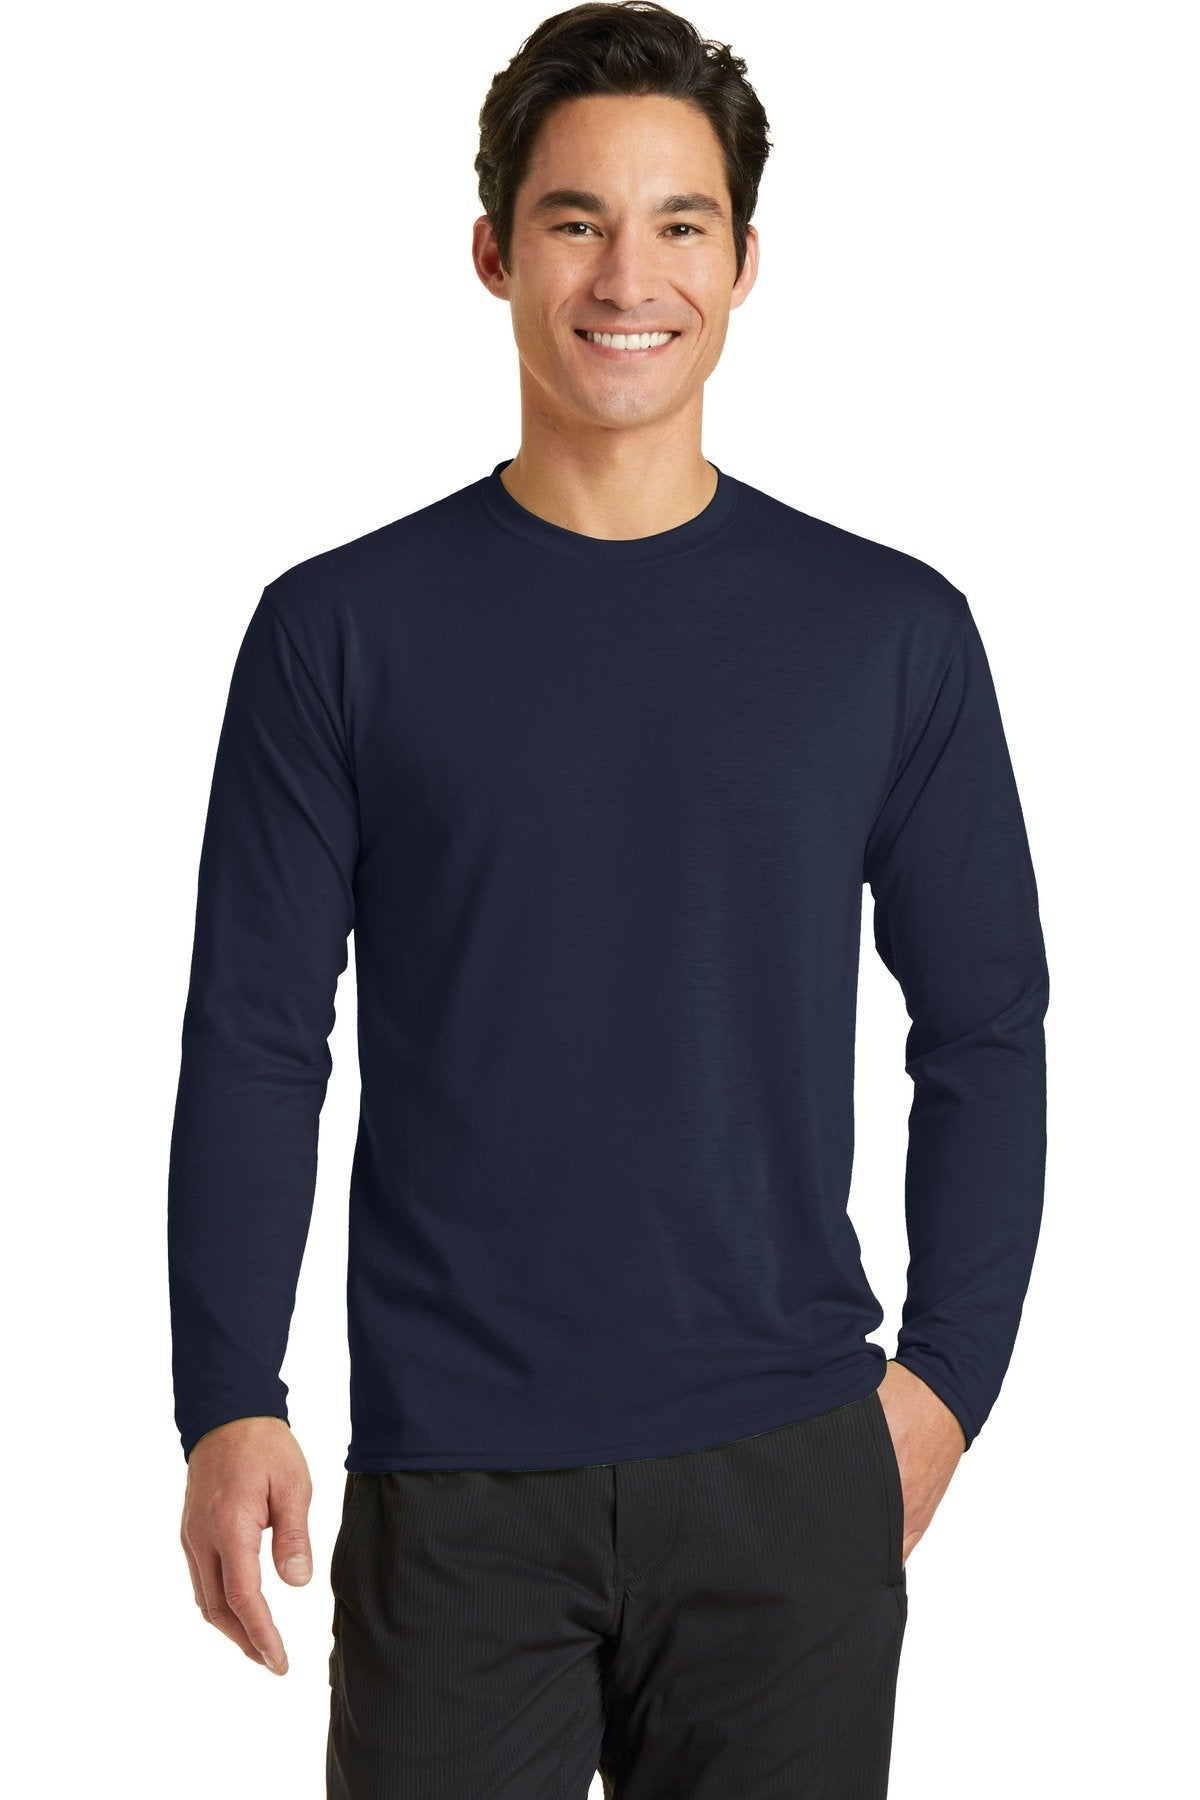 Deep Navy - Port & Company PC381LS